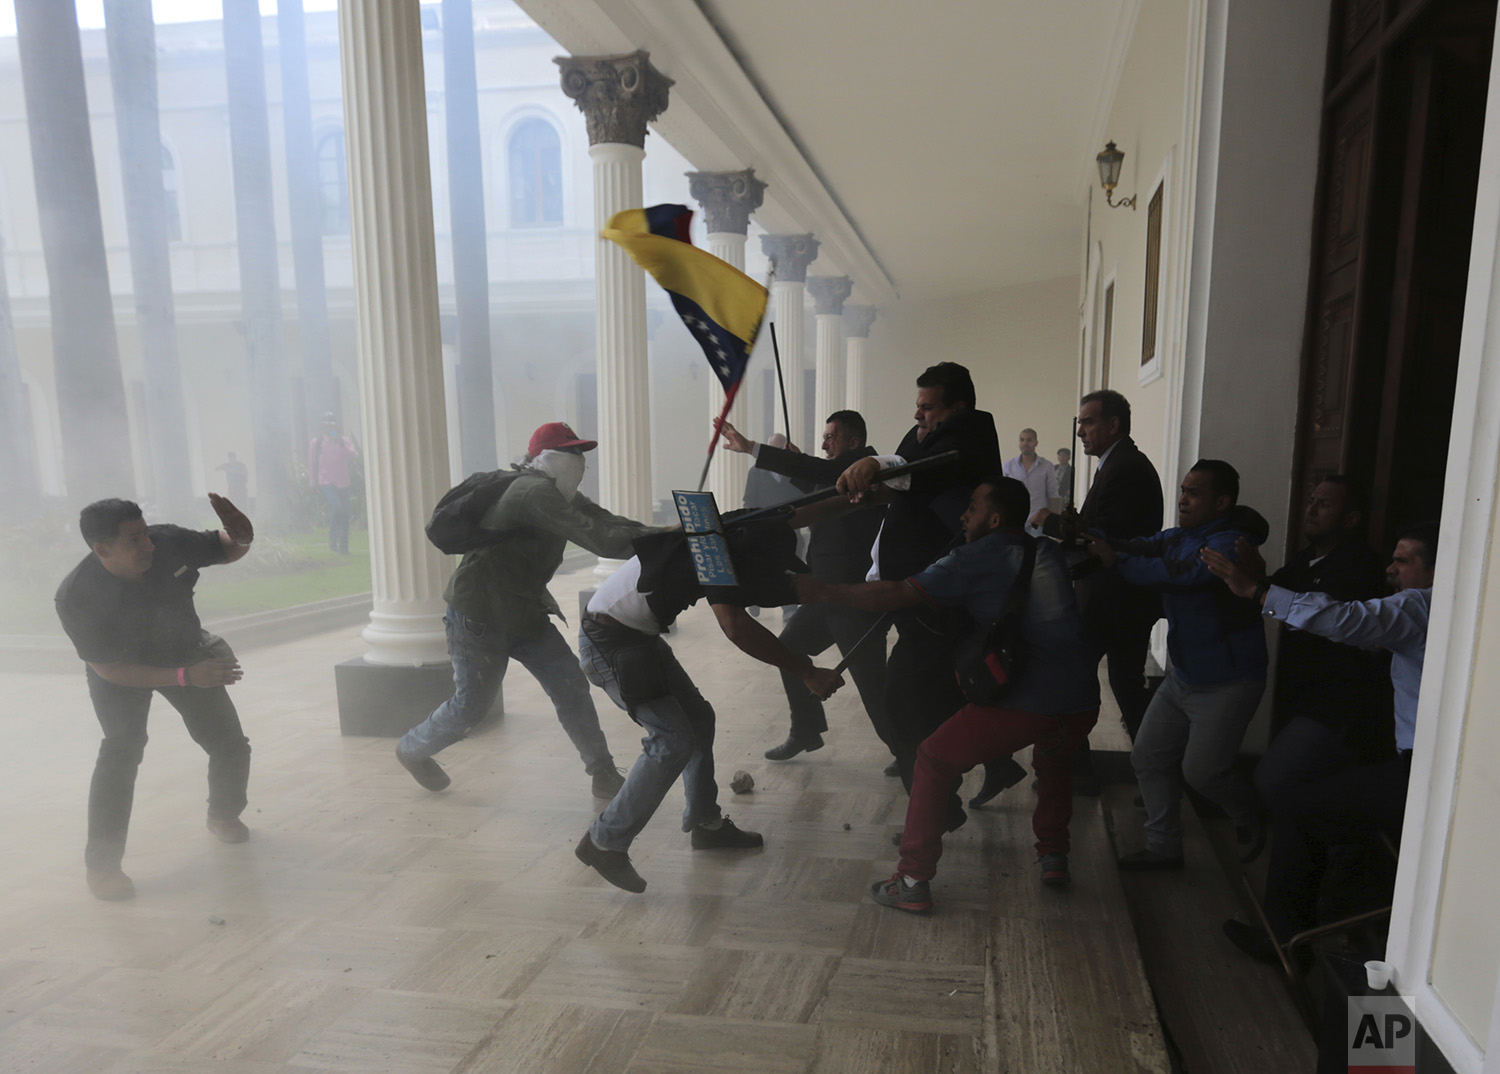 Opposition lawmakers fight with pro-government militia members who are trying to force their way into the National Assembly during a special session coinciding with Venezuela's independence day, in Caracas, Wednesday, July 5, 2017.  (AP Photos/Fernando Llano)